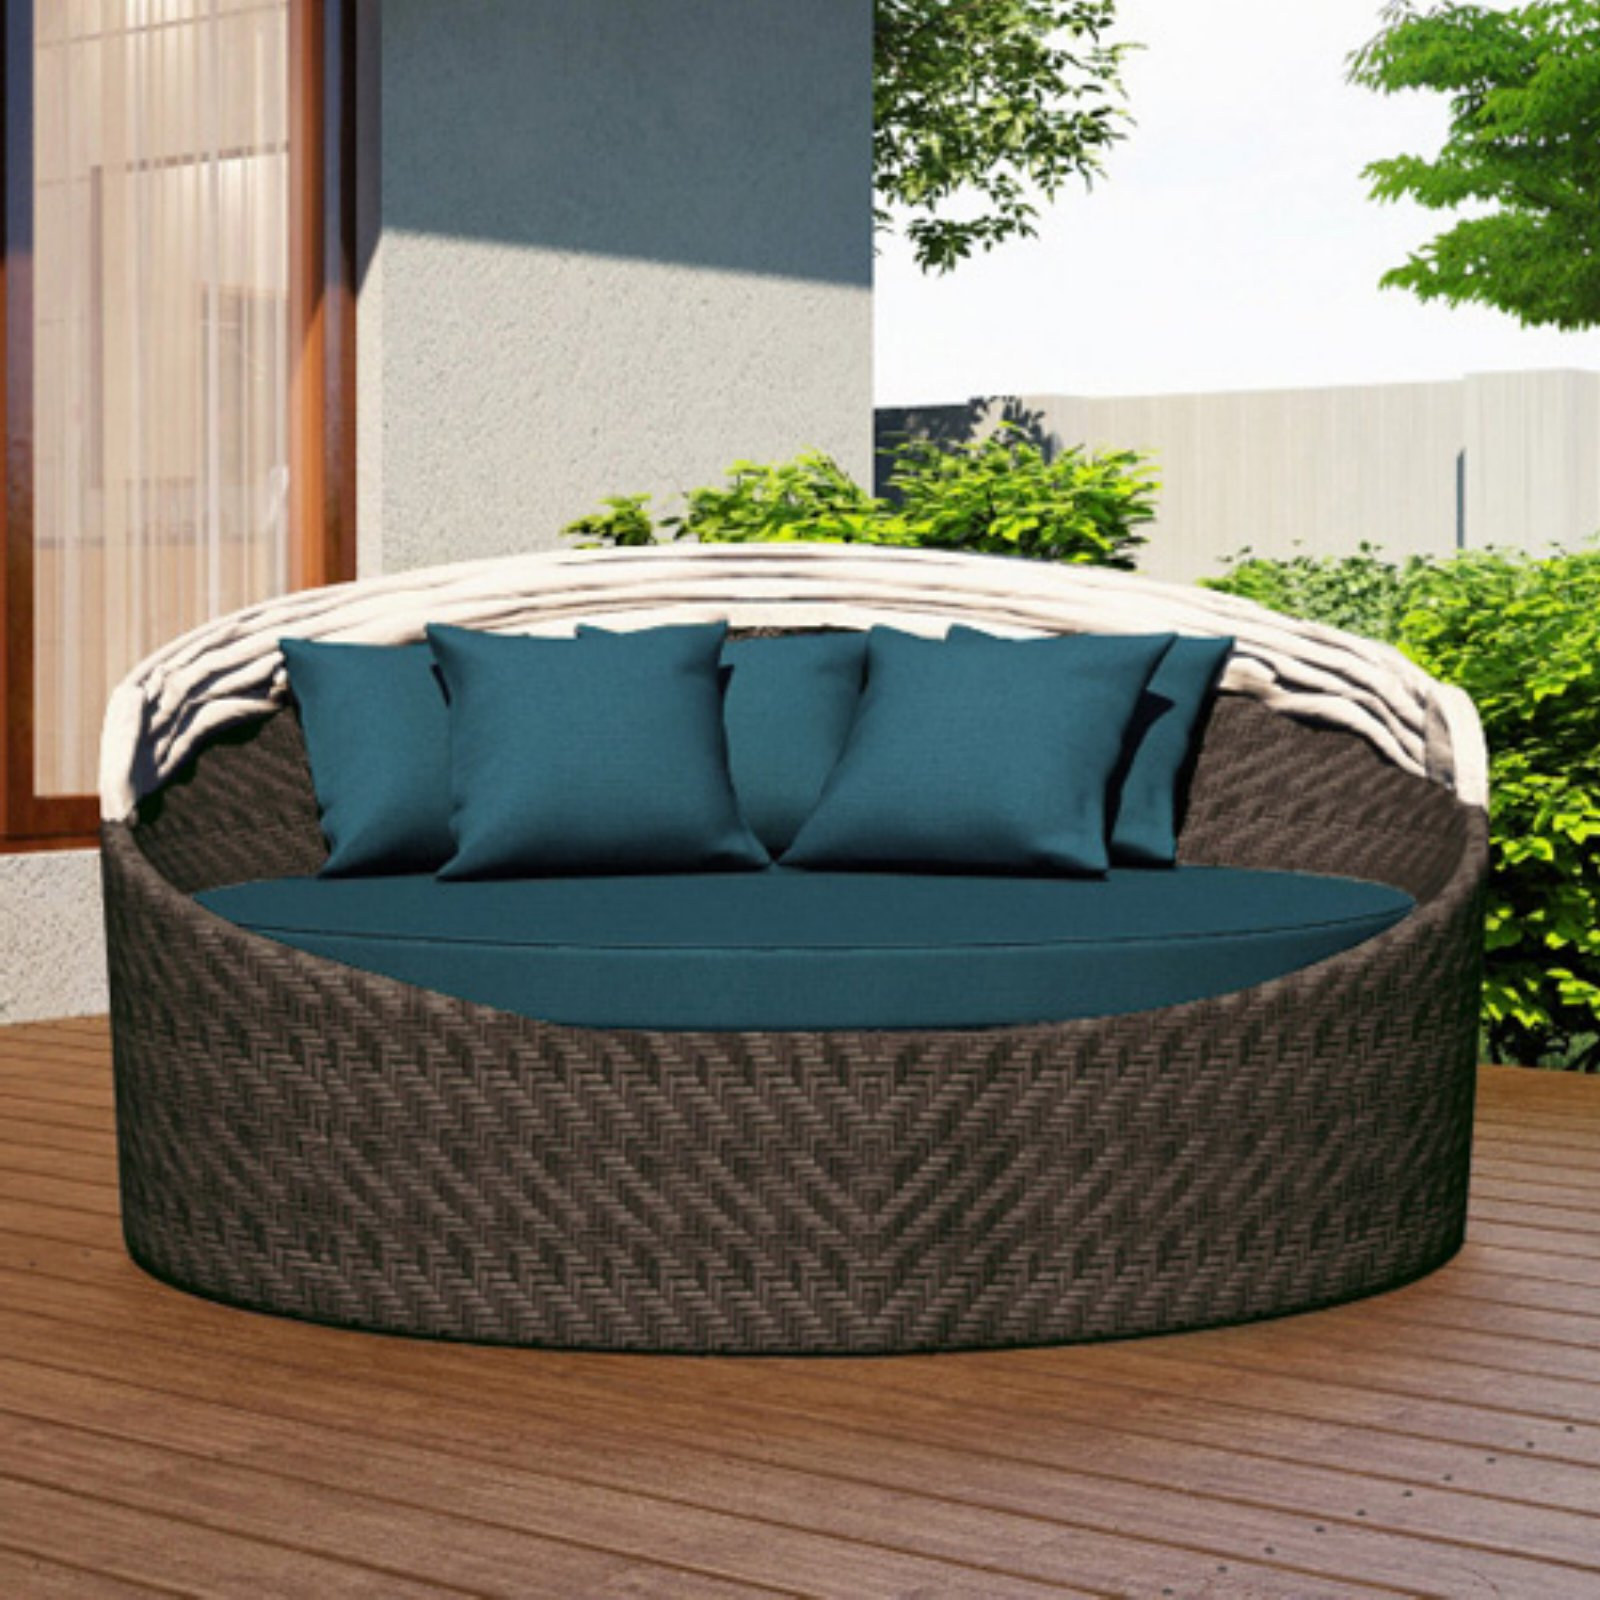 Best And Newest Harmonia Living Wink Outdoor Canopy Daybed Cast Lagoon Pertaining To Keiran Patio Daybeds With Cushions (View 3 of 20)